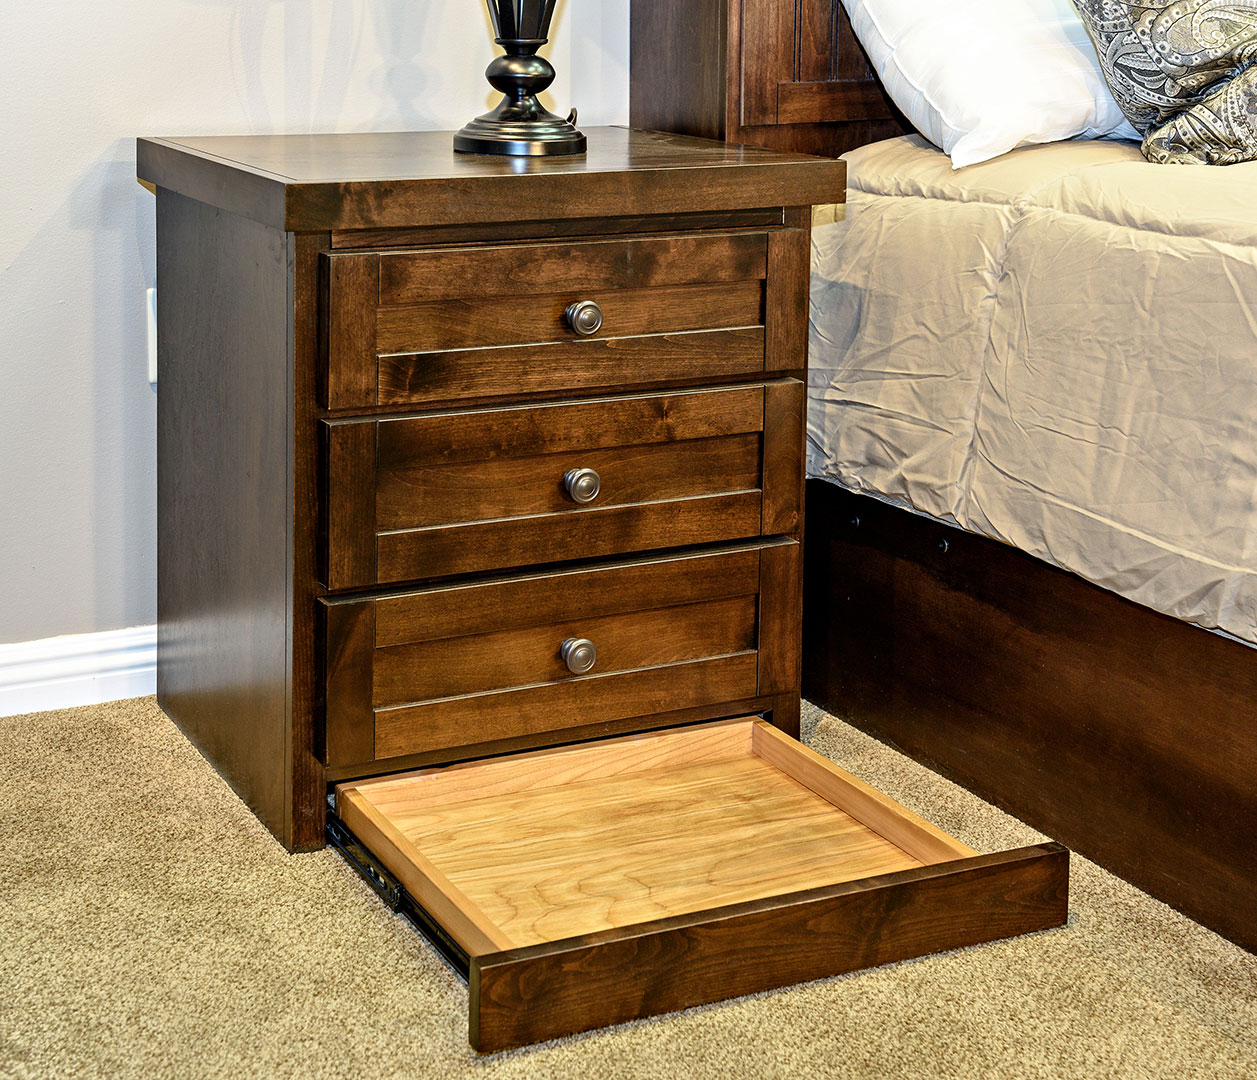 Hidden Storage Bed Images Page 1